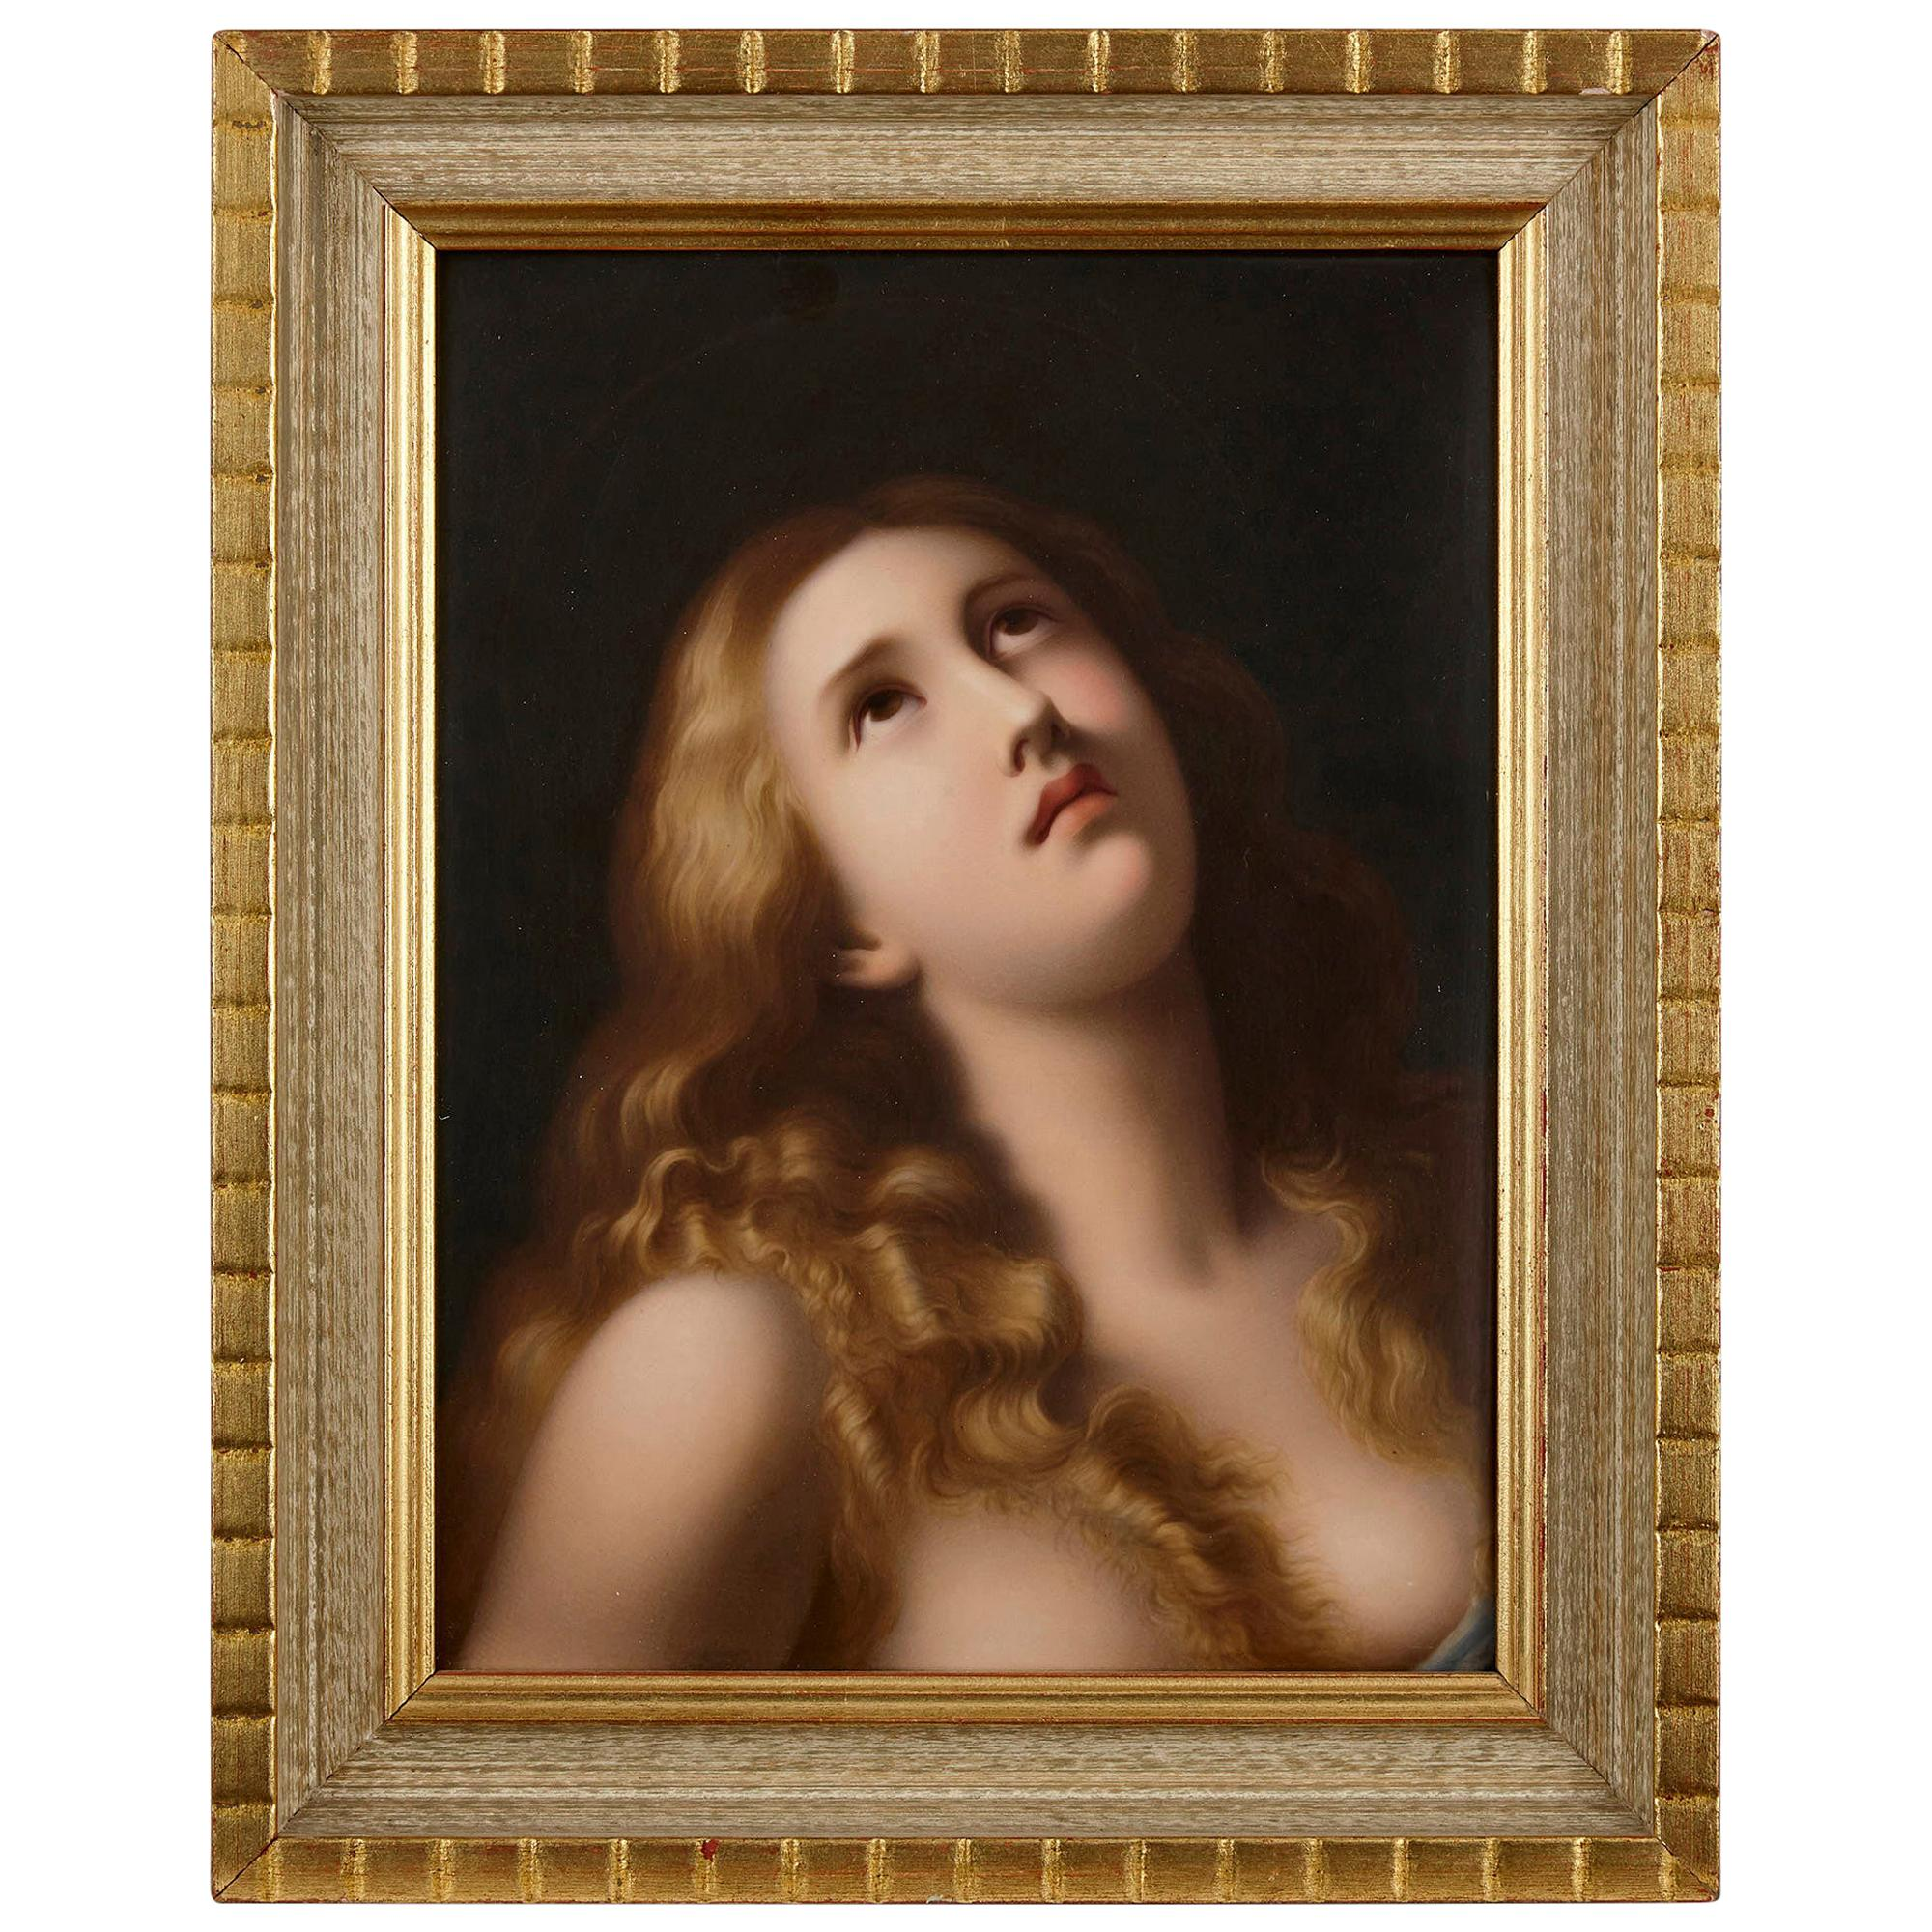 Porcelain Plaque Painted with Mary Magdalene by K.P.M